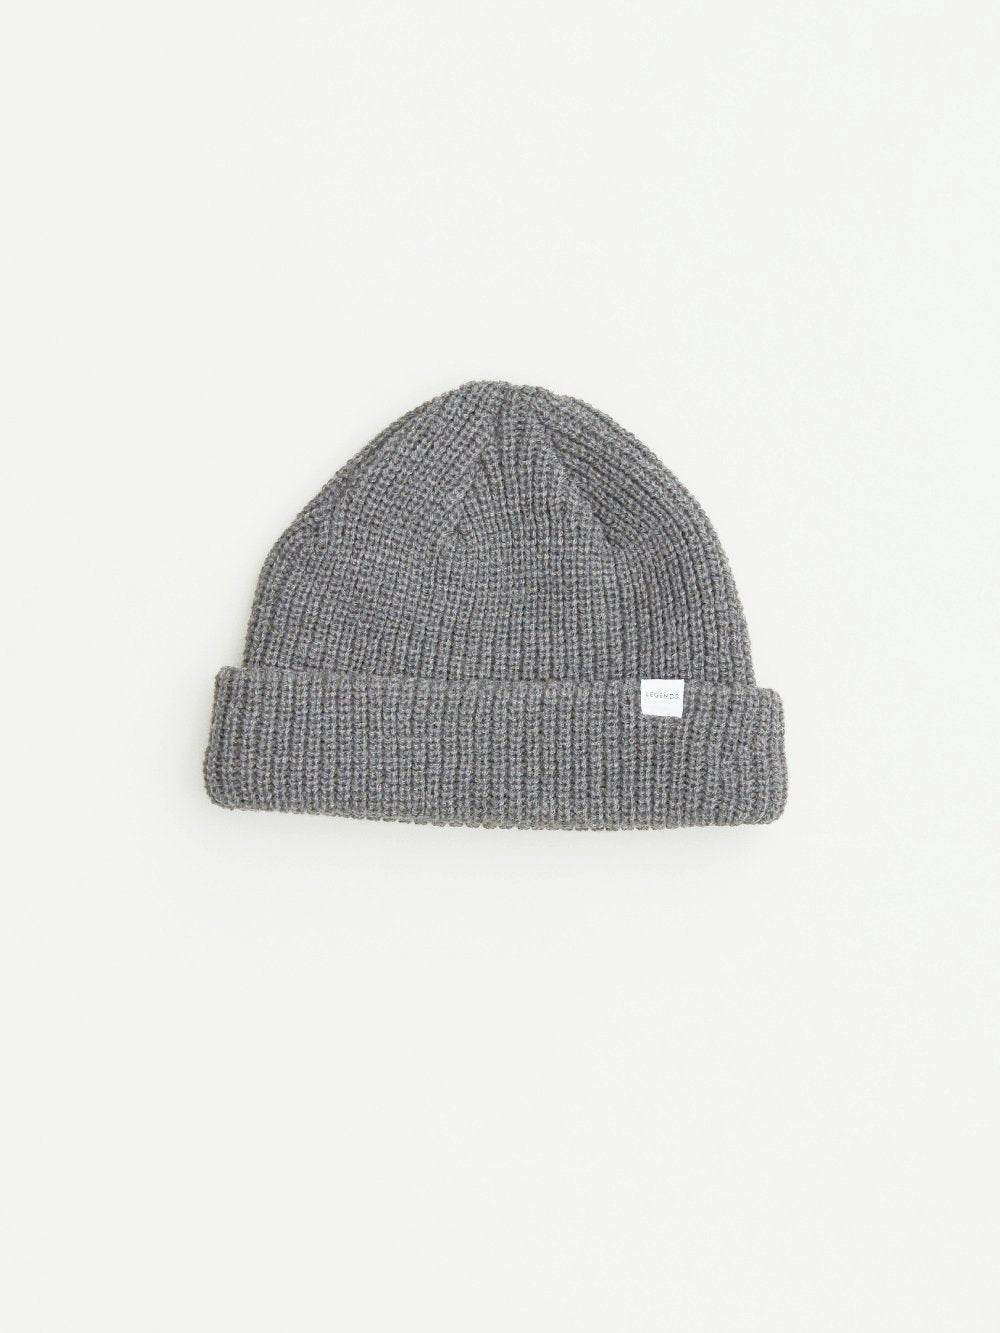 Northern Beanie | Light Grey